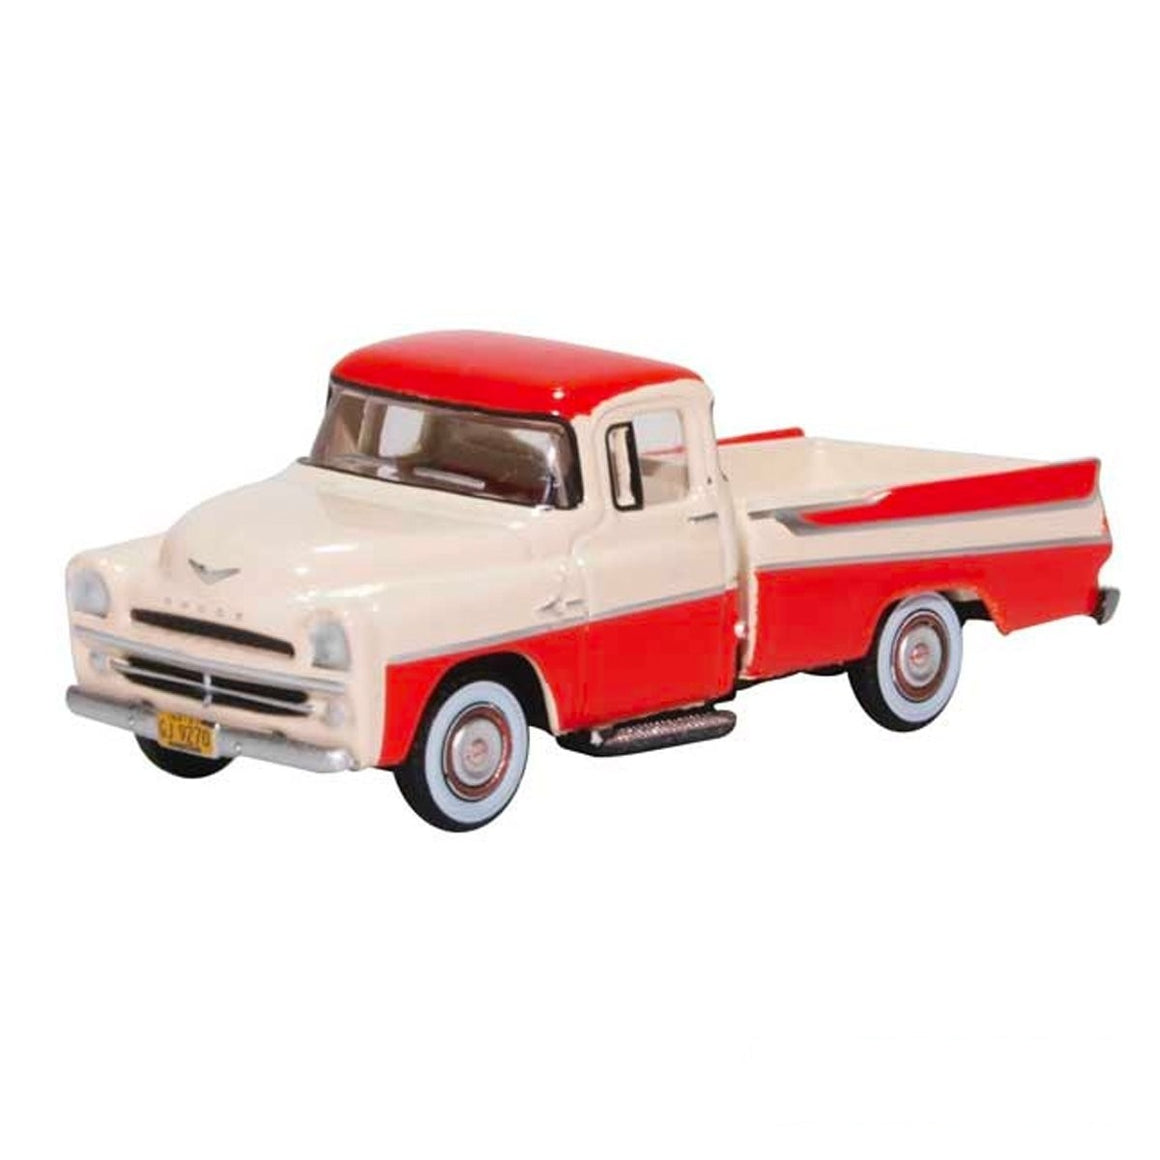 HO Scale: 1957 Dodge D100 Sweptside Pickup Truck - Coral Red and Glacier White